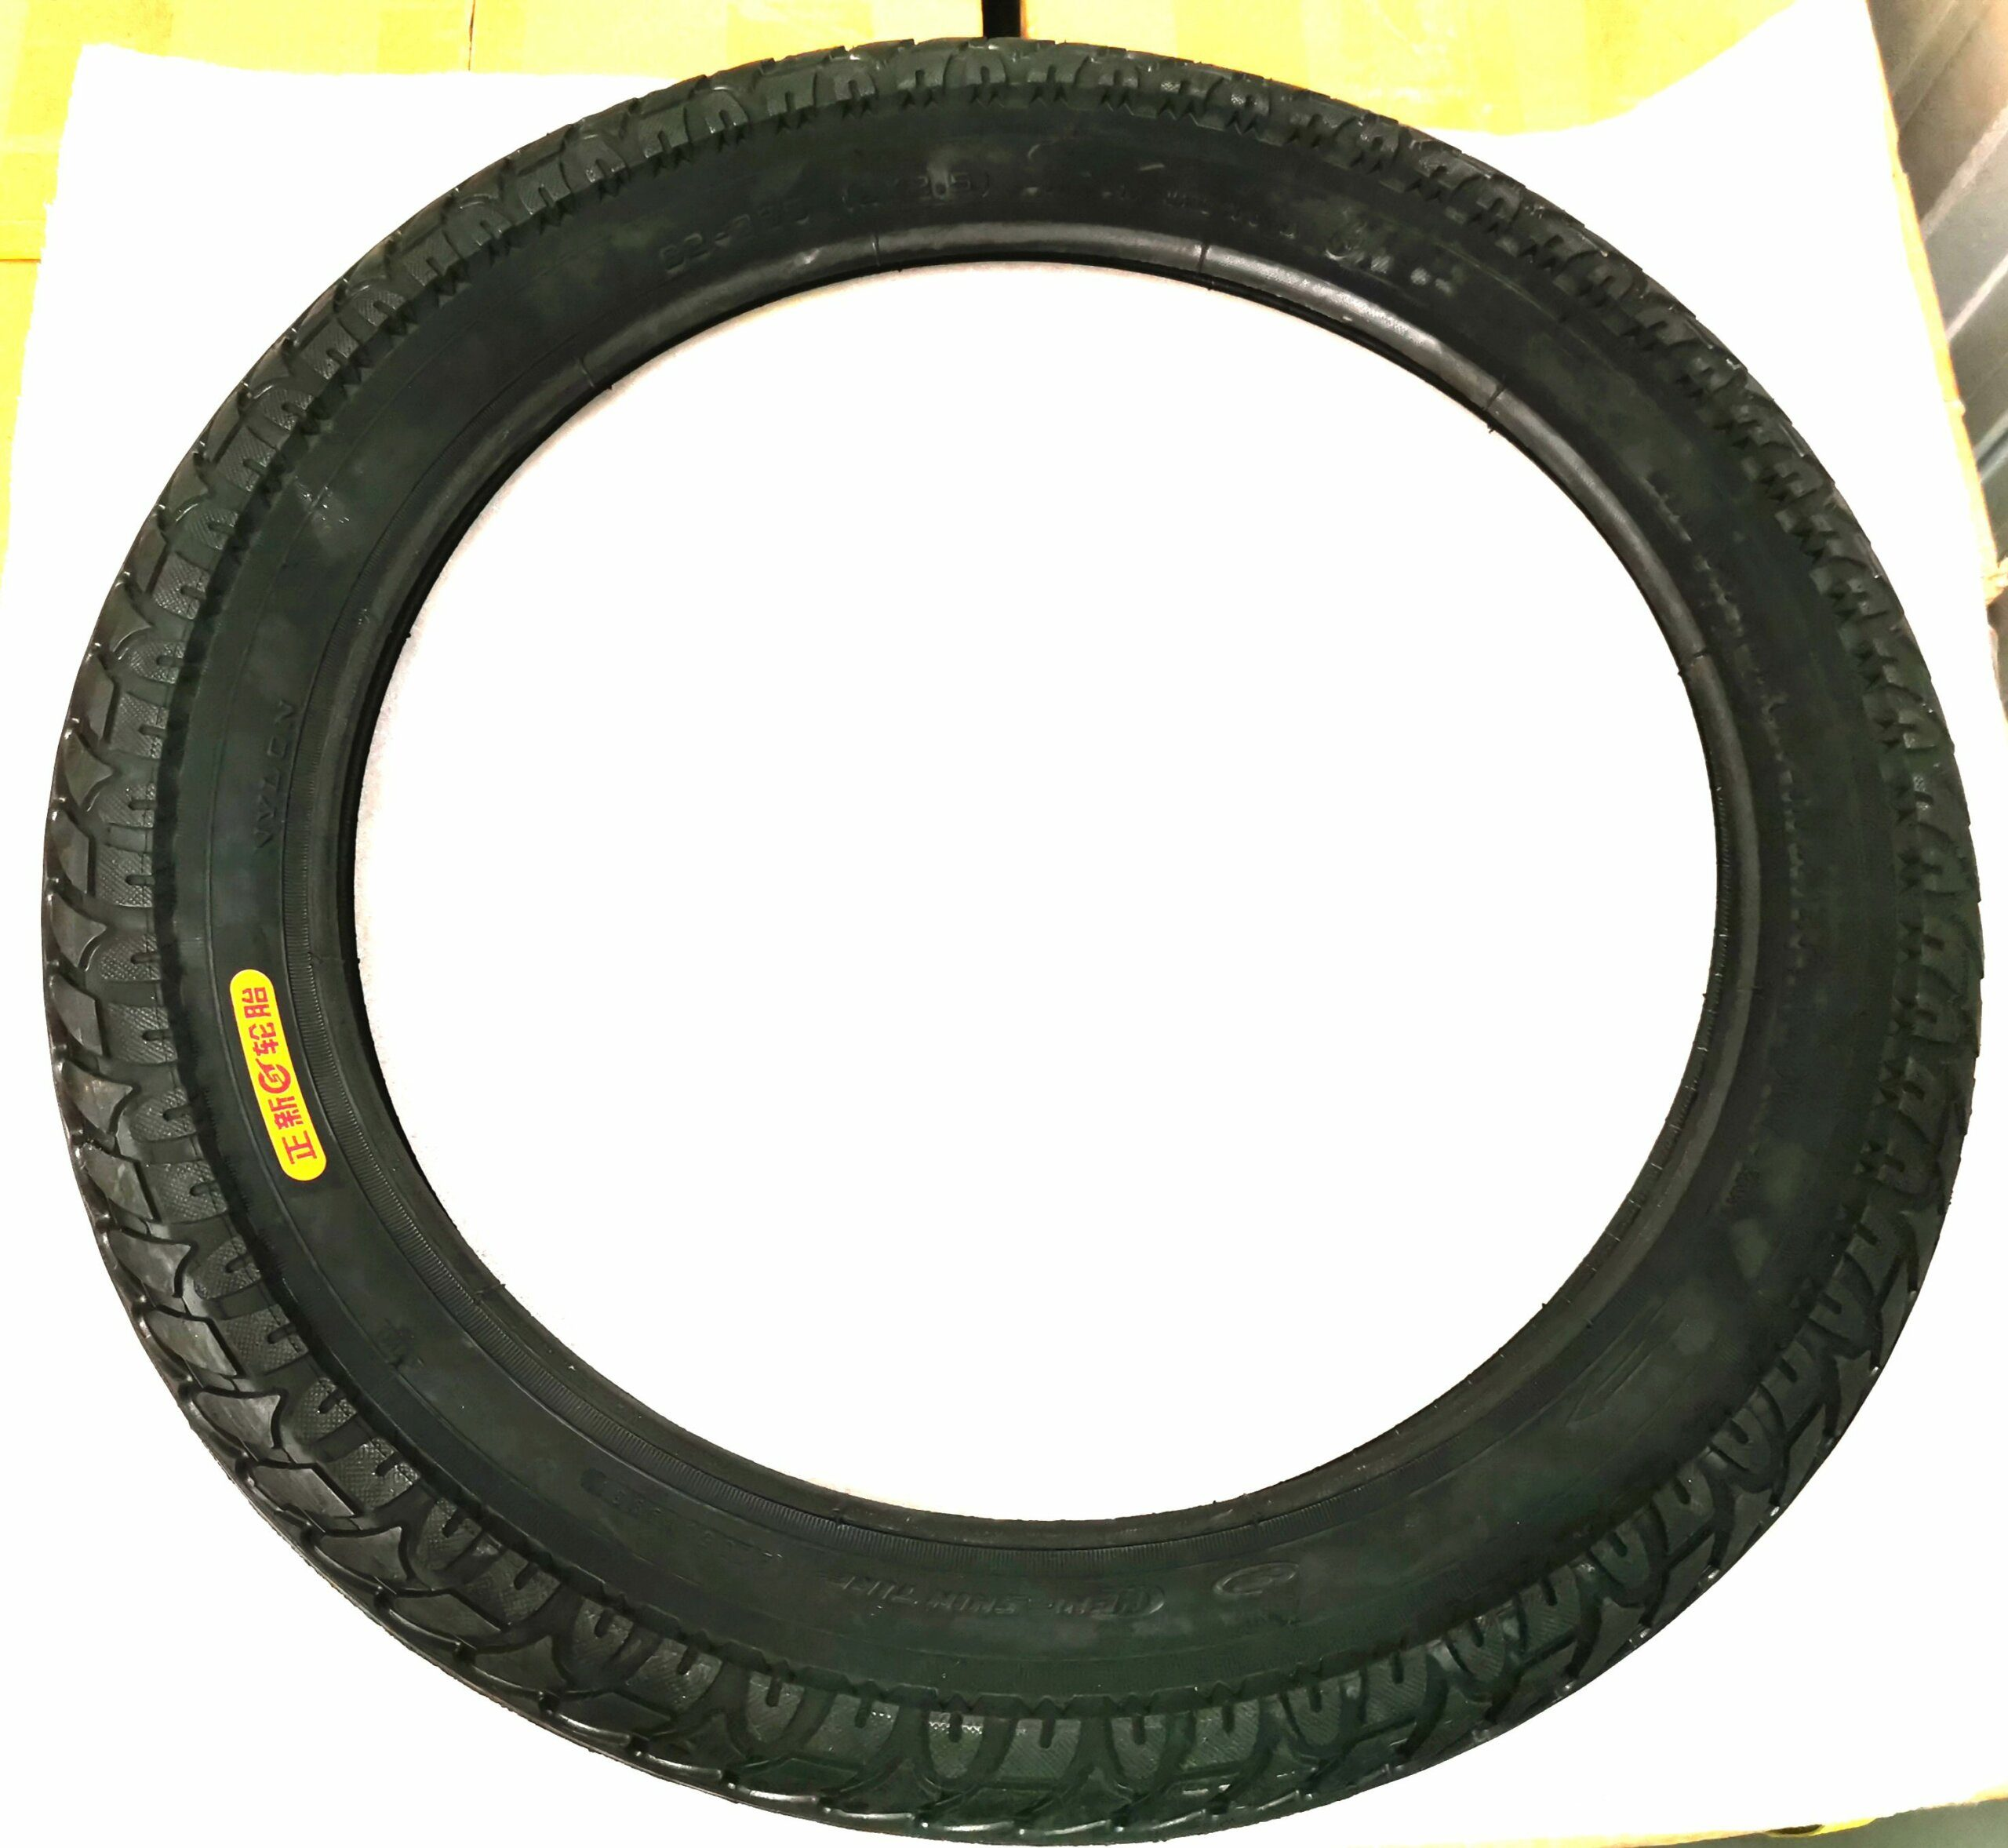 Kingsong_18L_electric_unicycle_tyre